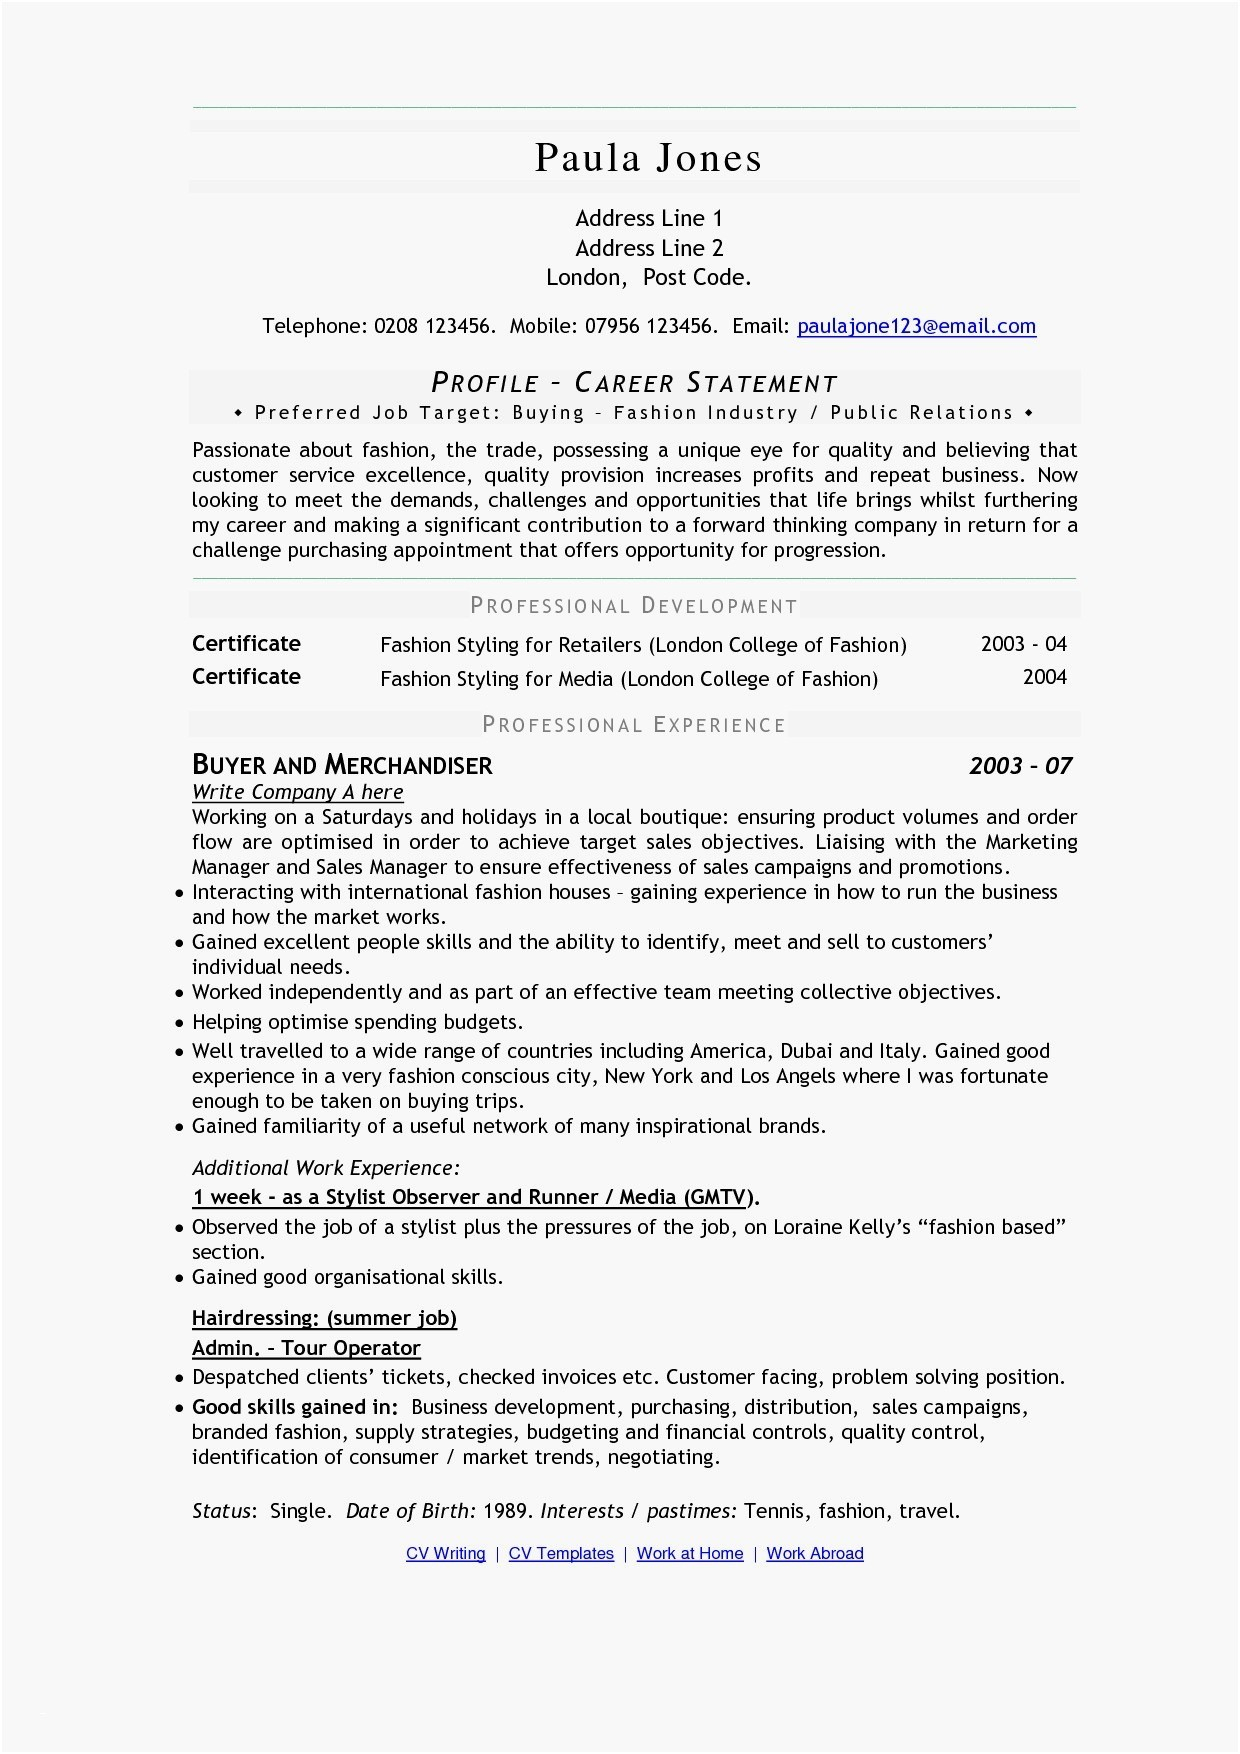 Resume Writing Help - Writing Skills Resume Lovely Resume Writing Services Aggiegeeks